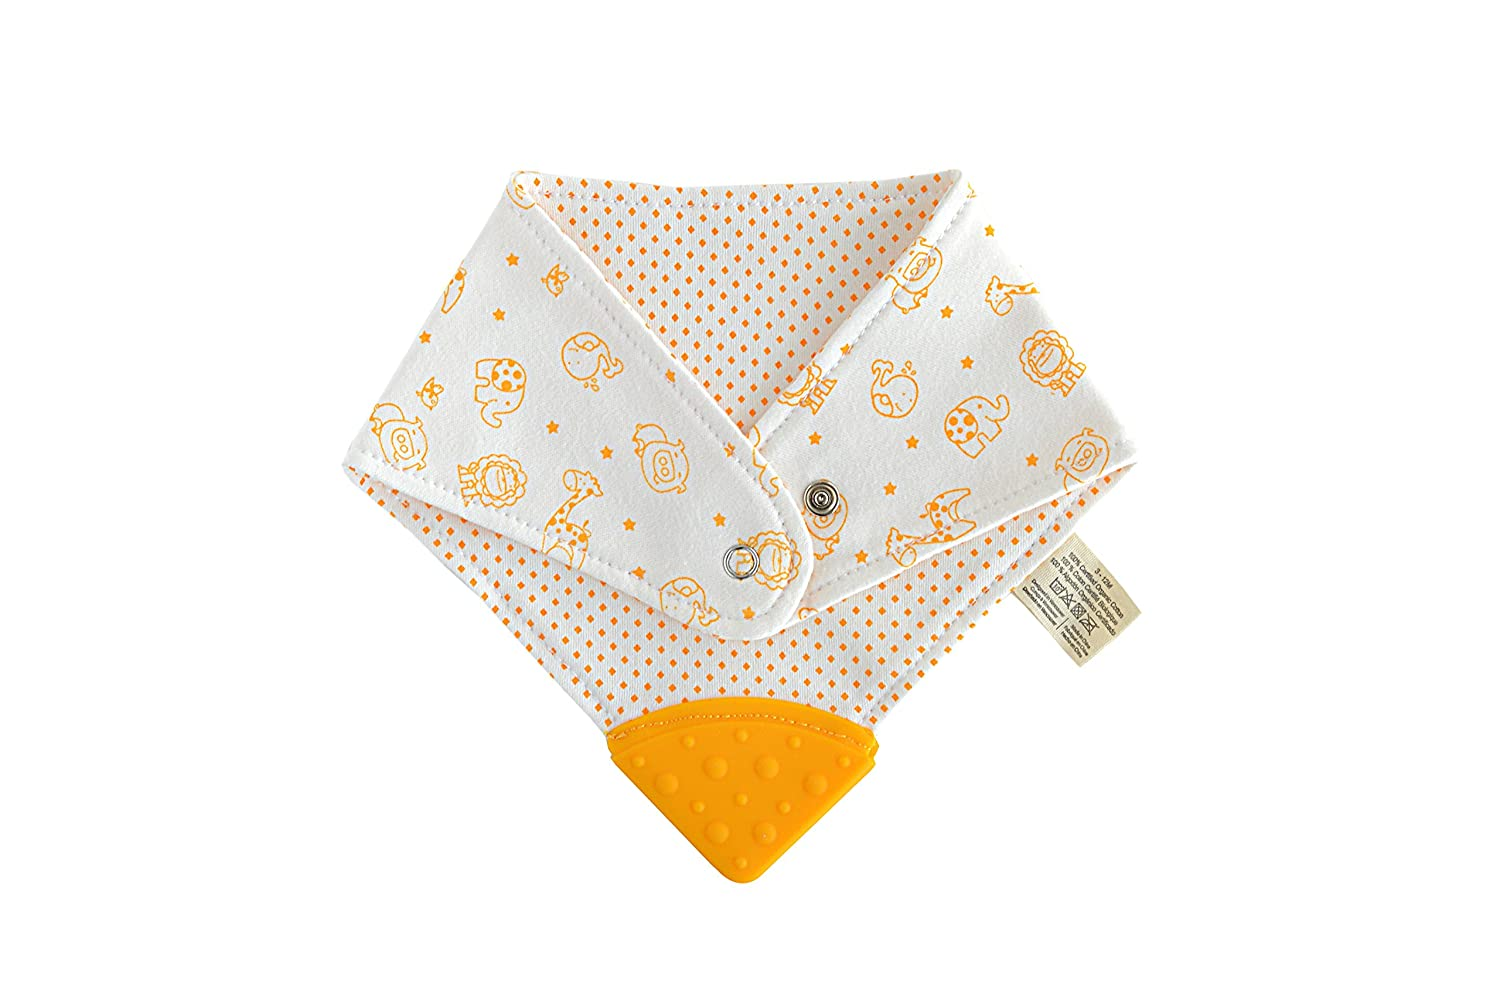 Marcus & Marcus' Organic Teething Bib, Lola the Giraffe 11506